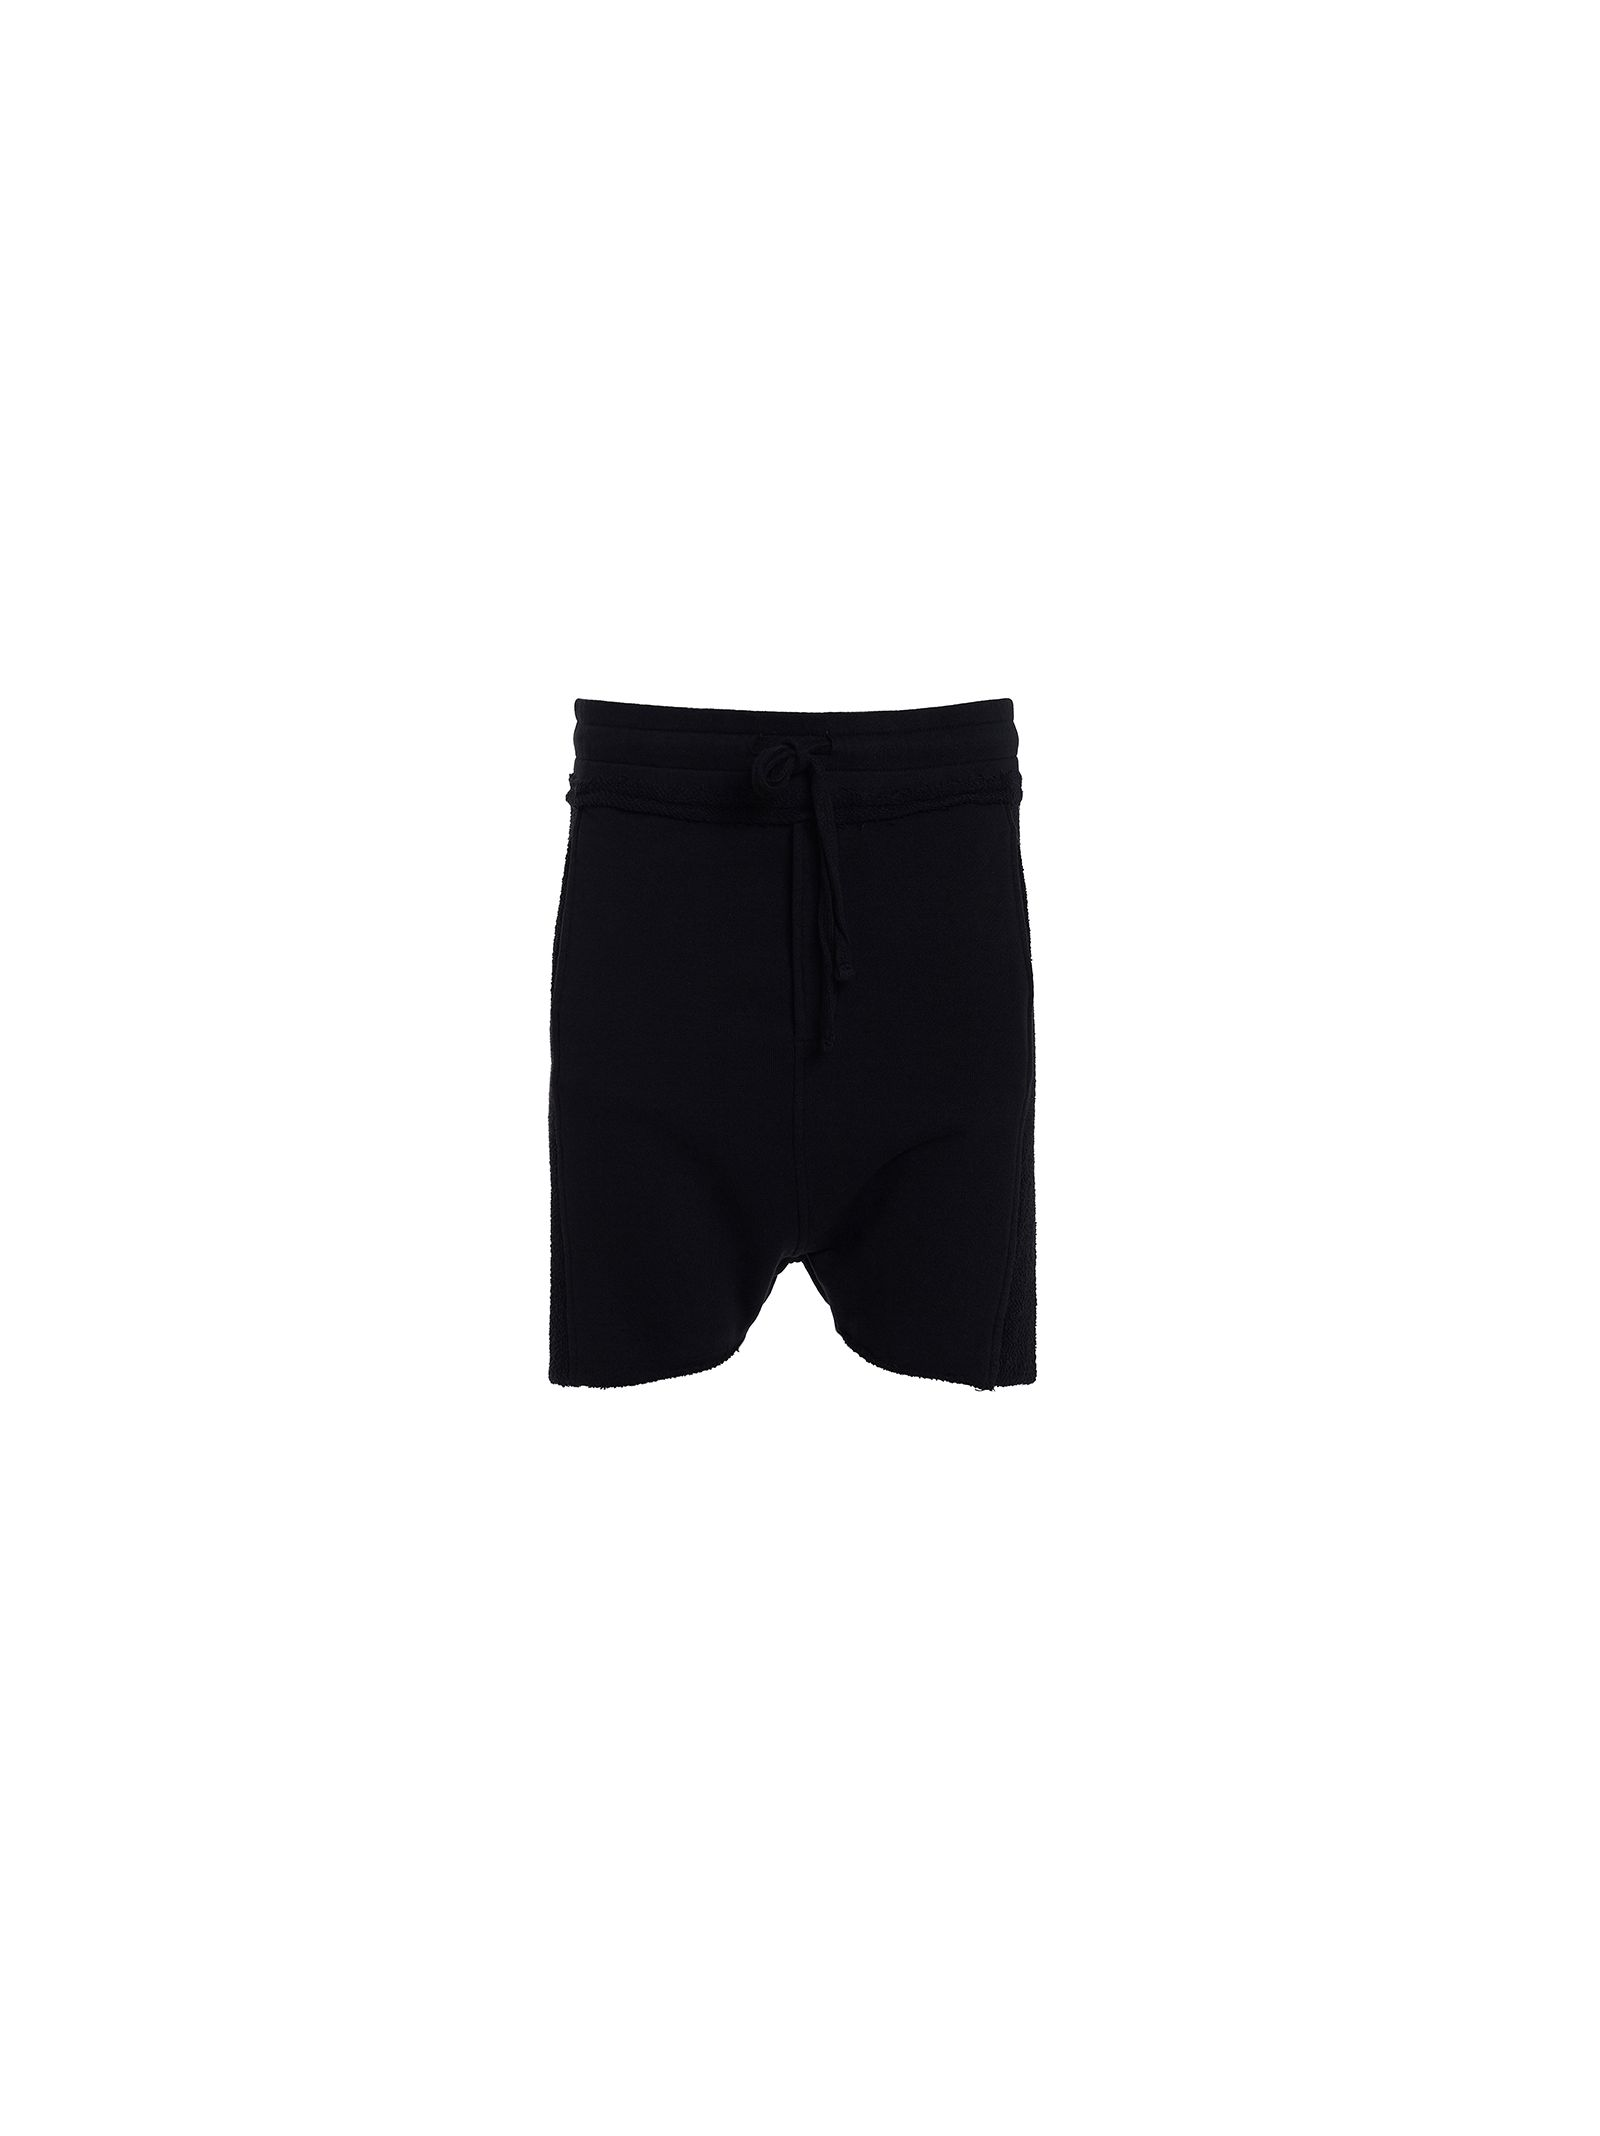 Thom Krom Black Fleece Bermuda Shorts